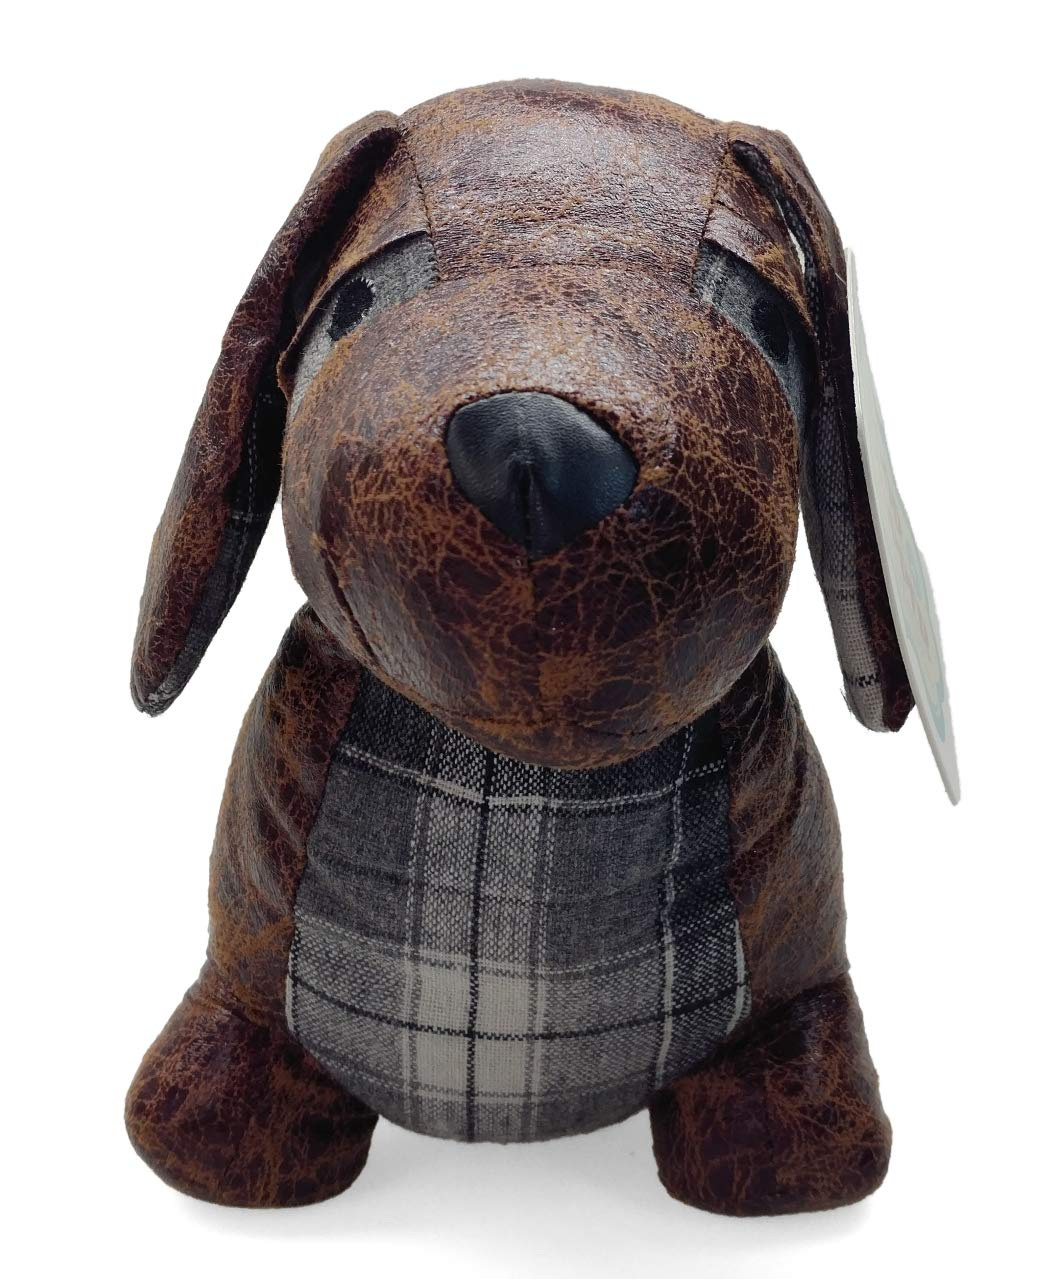 Faux Leather Dachshund Door Stopper - Adorable Faux Leather and Plaid Animal Gift Home Decoration